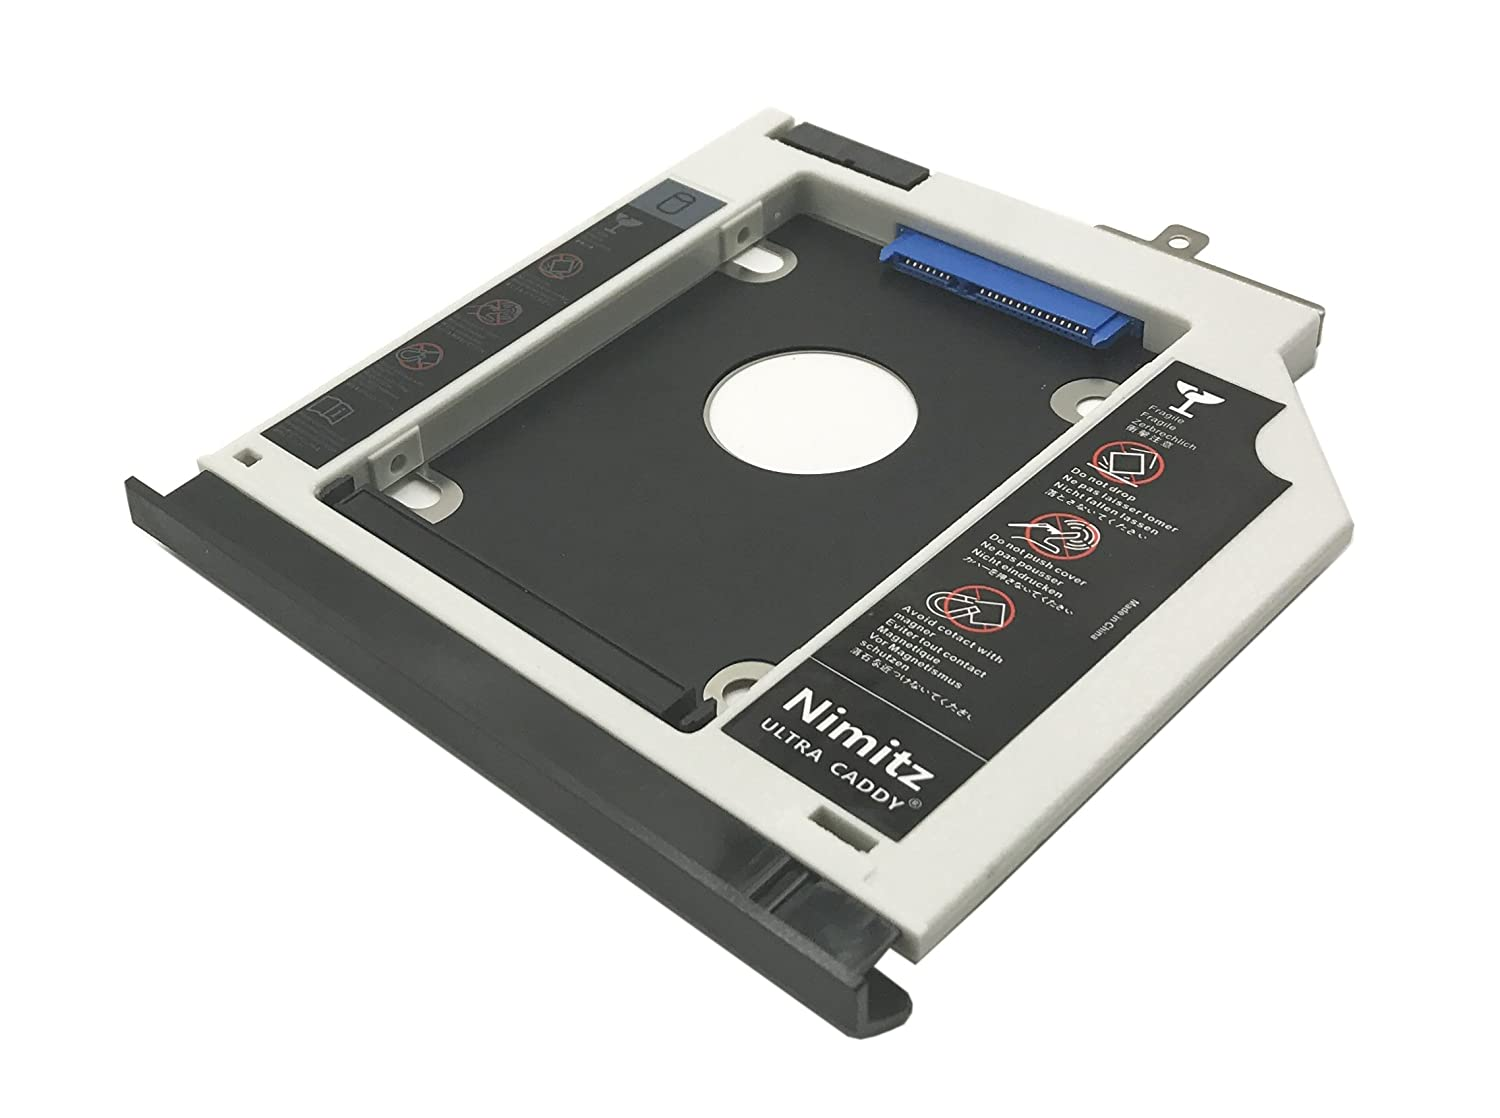 Caddy per secondo harddisk HDD SSD Nimitz per Dell Precision M4600 M4700 M4800 M6400 M6500 M6600 M6700 M6800